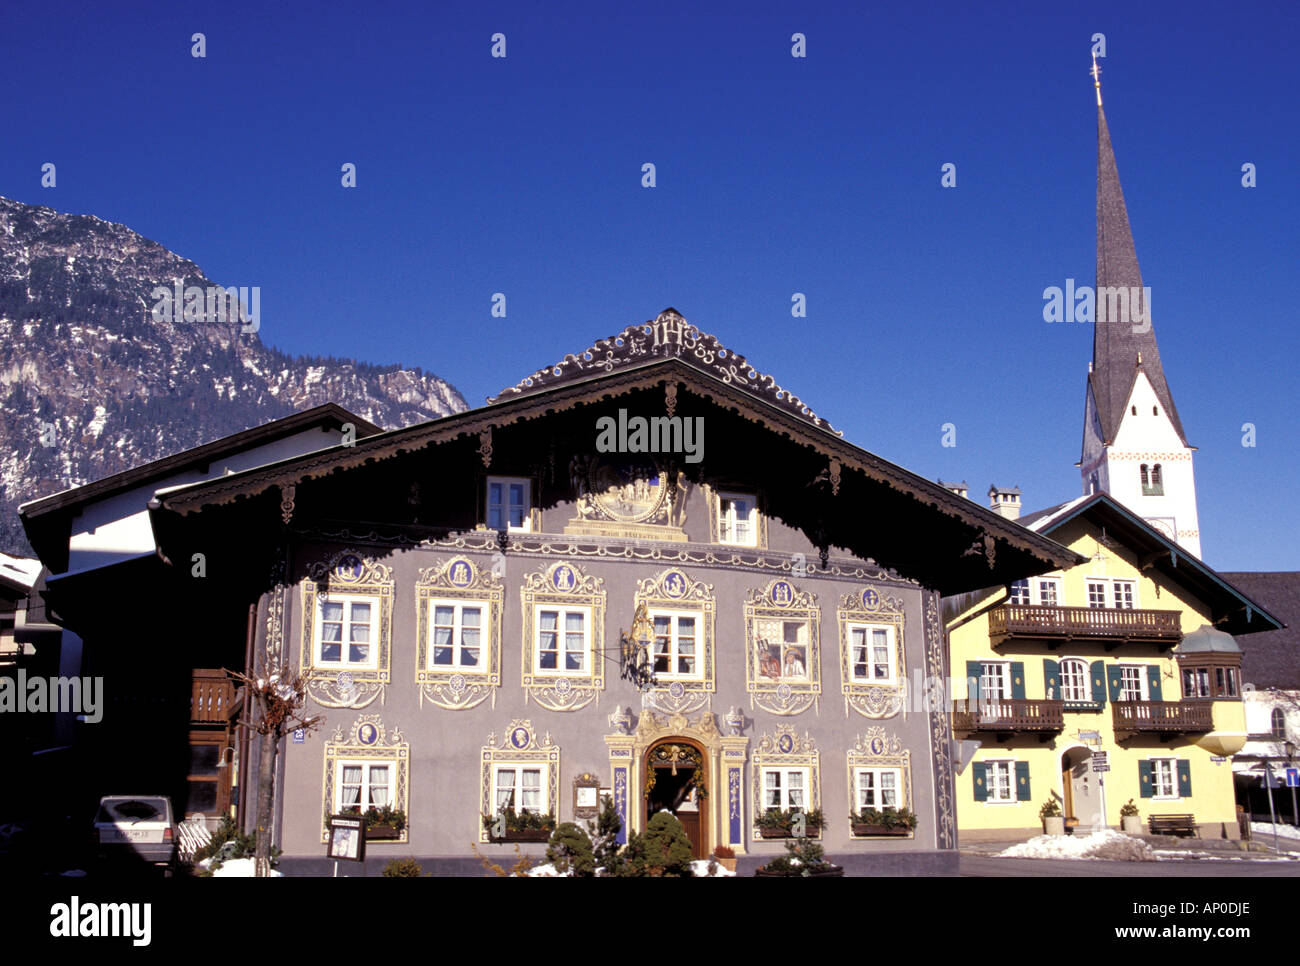 Europe, Germany, Bavaria, Garmisch-Partenkirchen. Ristorante Husar - Stock Image